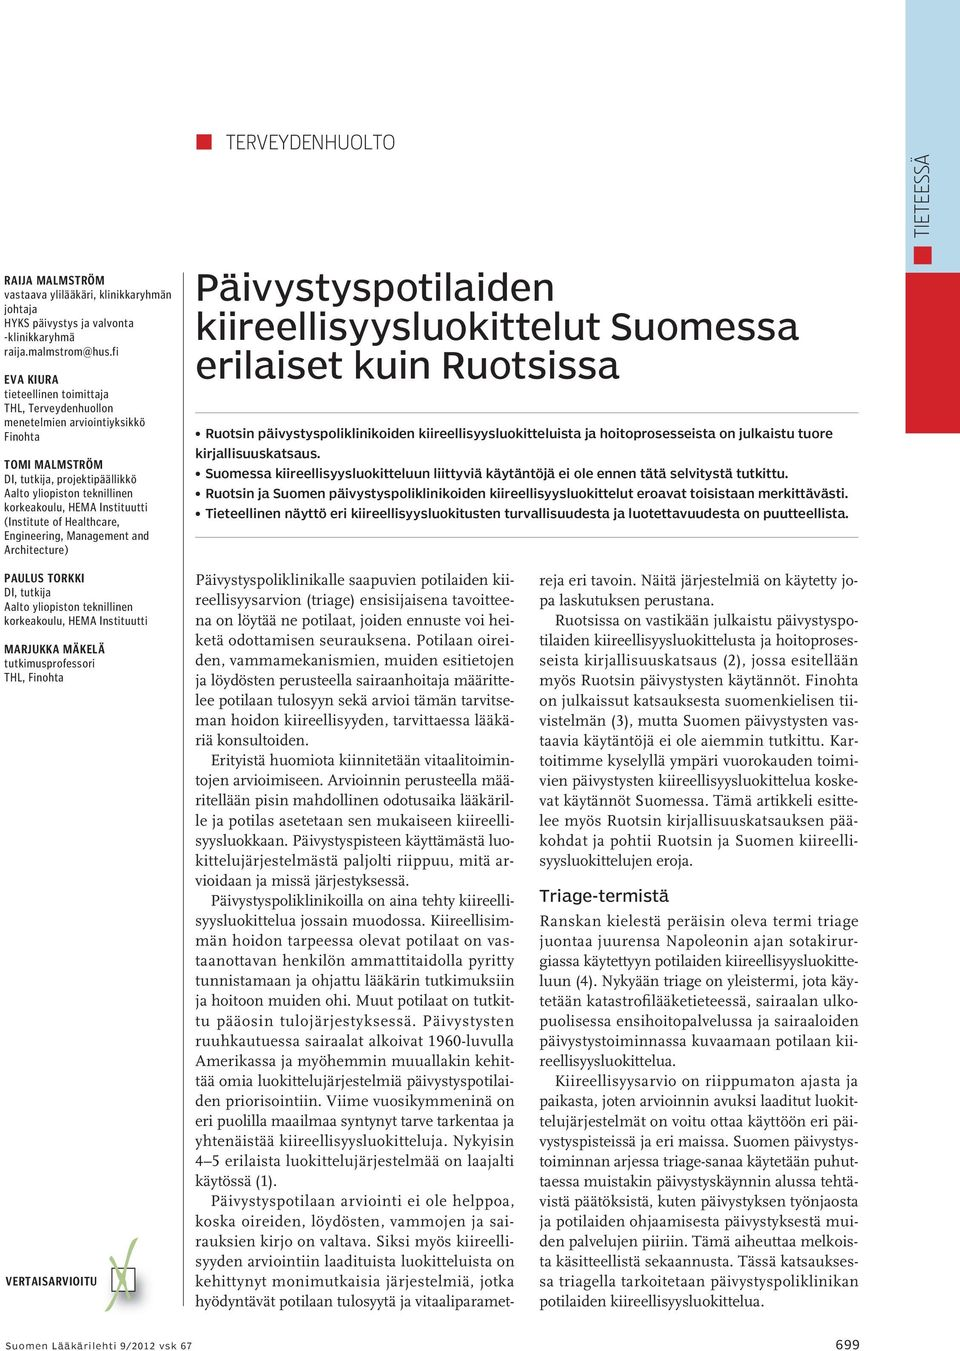 Instituutti (Institute of Healthcare, Engineering, Management and Architecture) Päivystyspotilaiden kiireellisyysluokittelut Suomessa erilaiset kuin Ruotsissa Ruotsin päivystyspoliklinikoiden